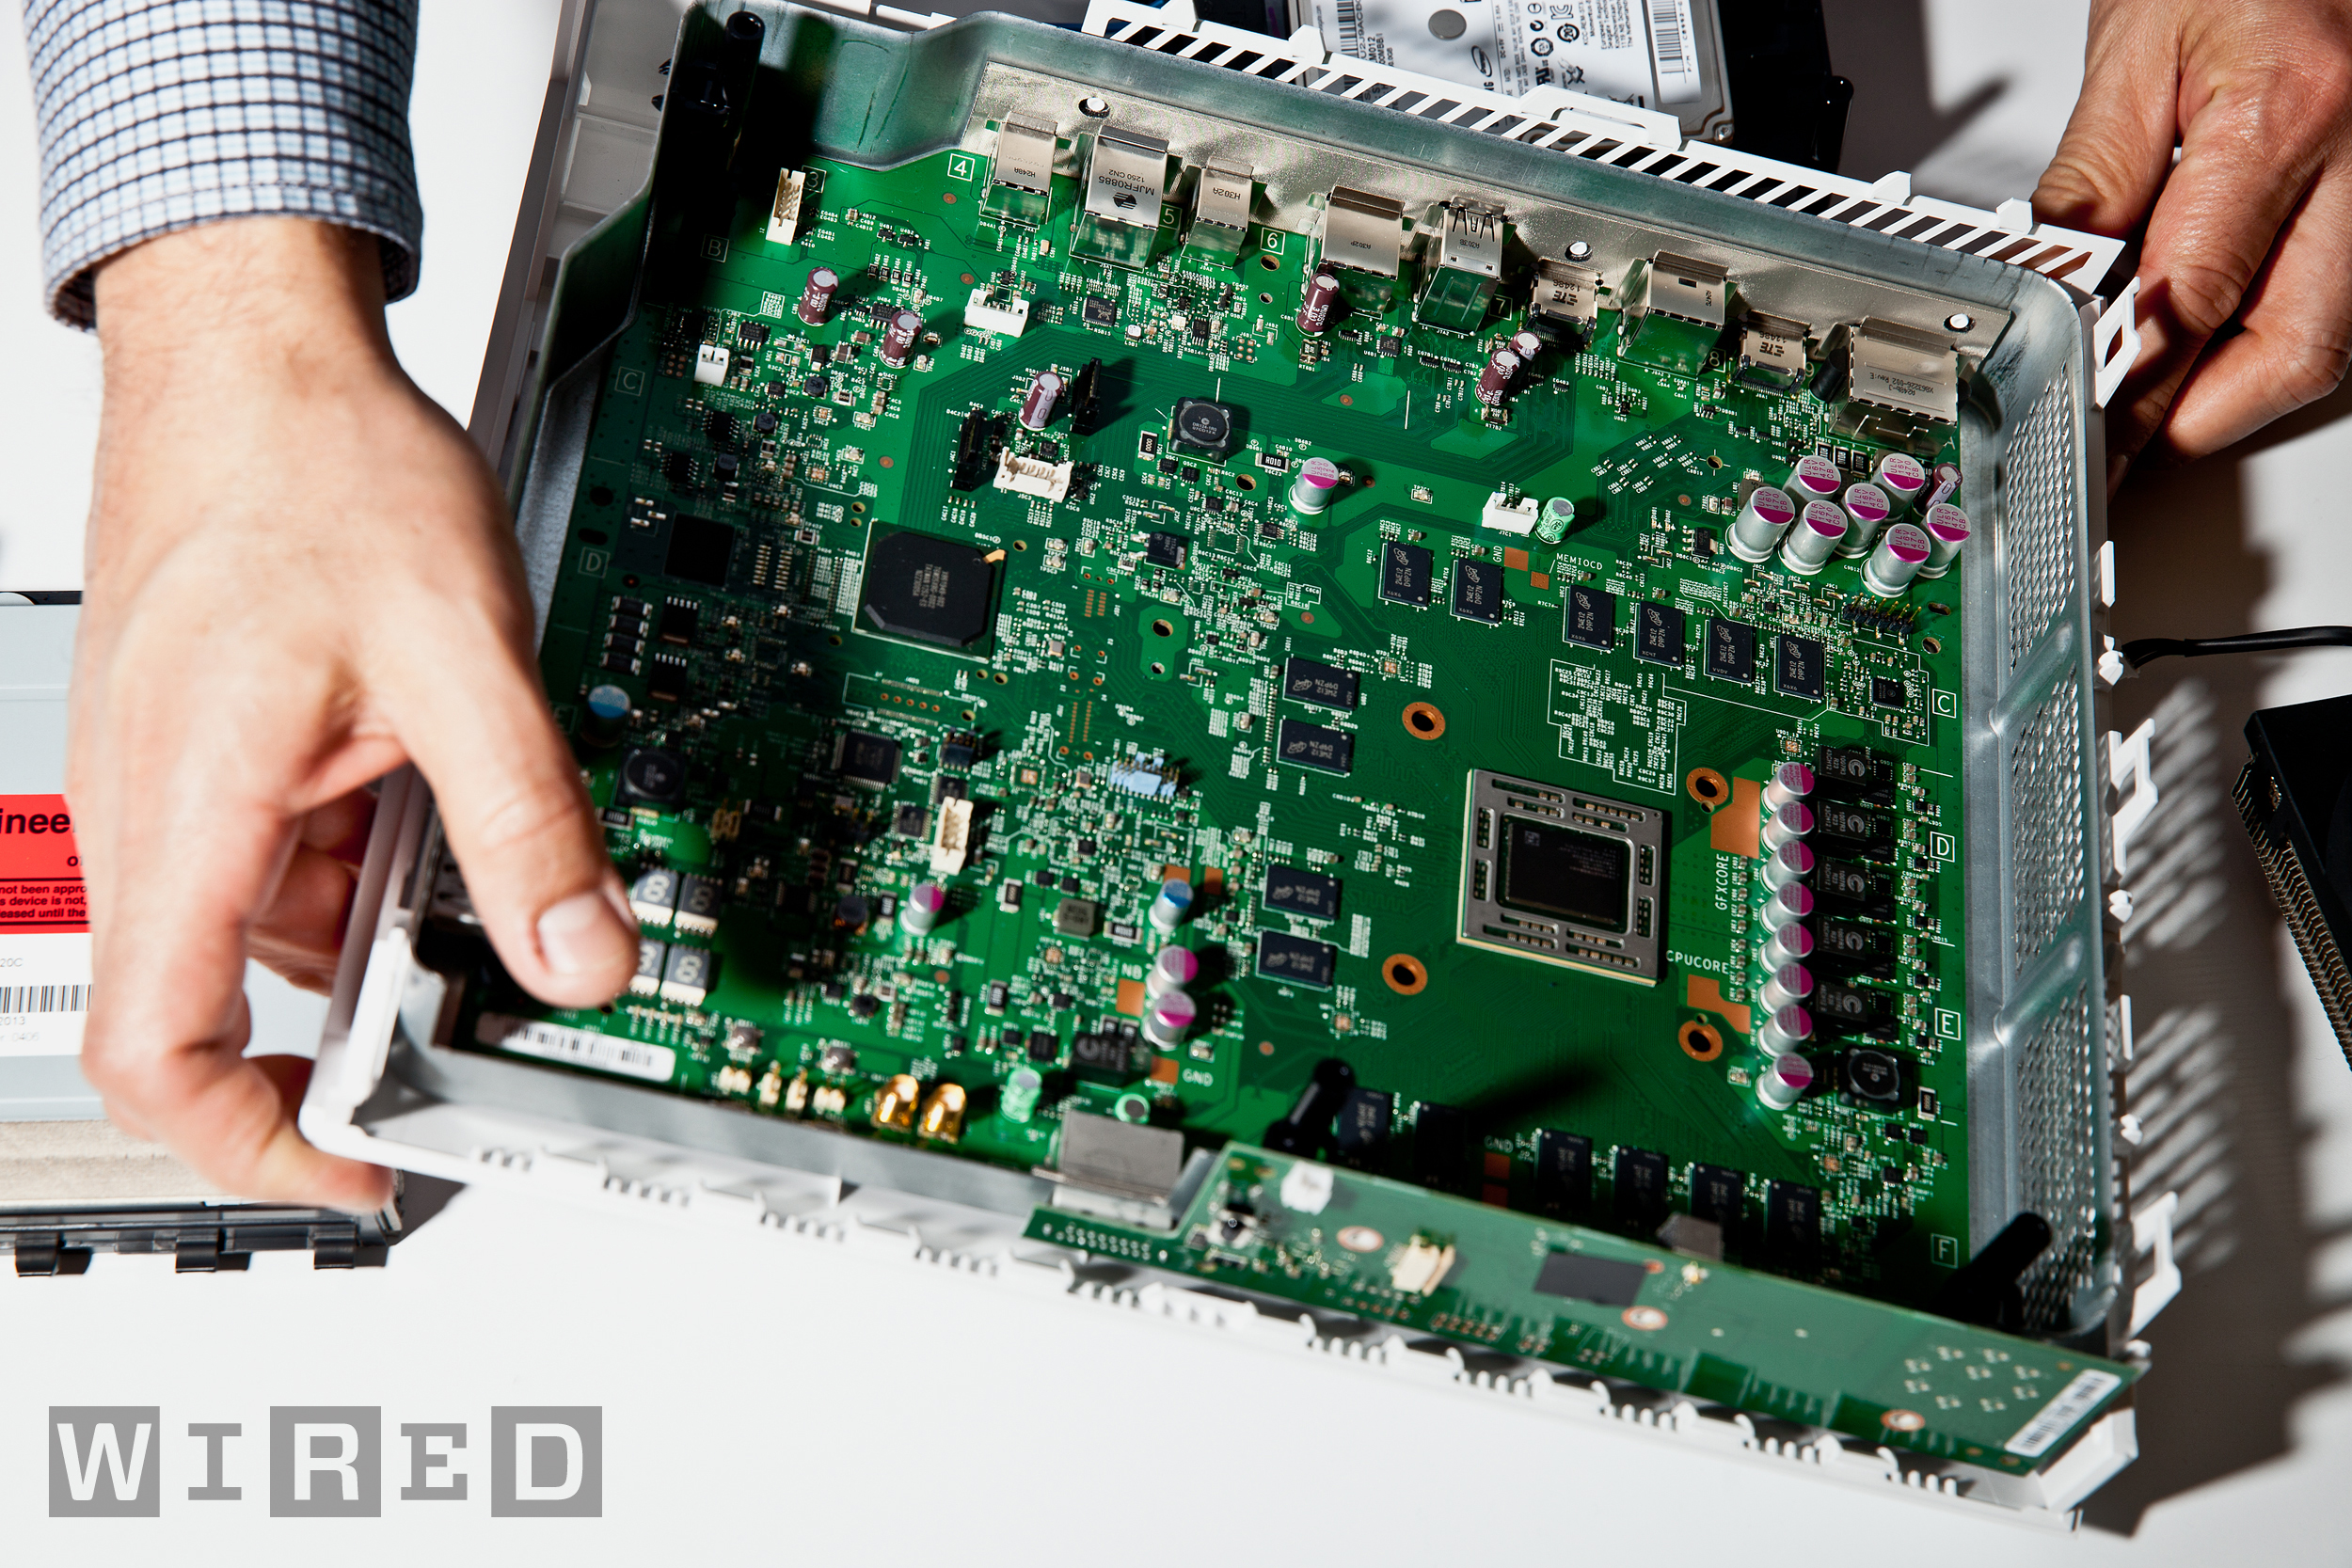 Xbox One Motherboard, courtesy Wired